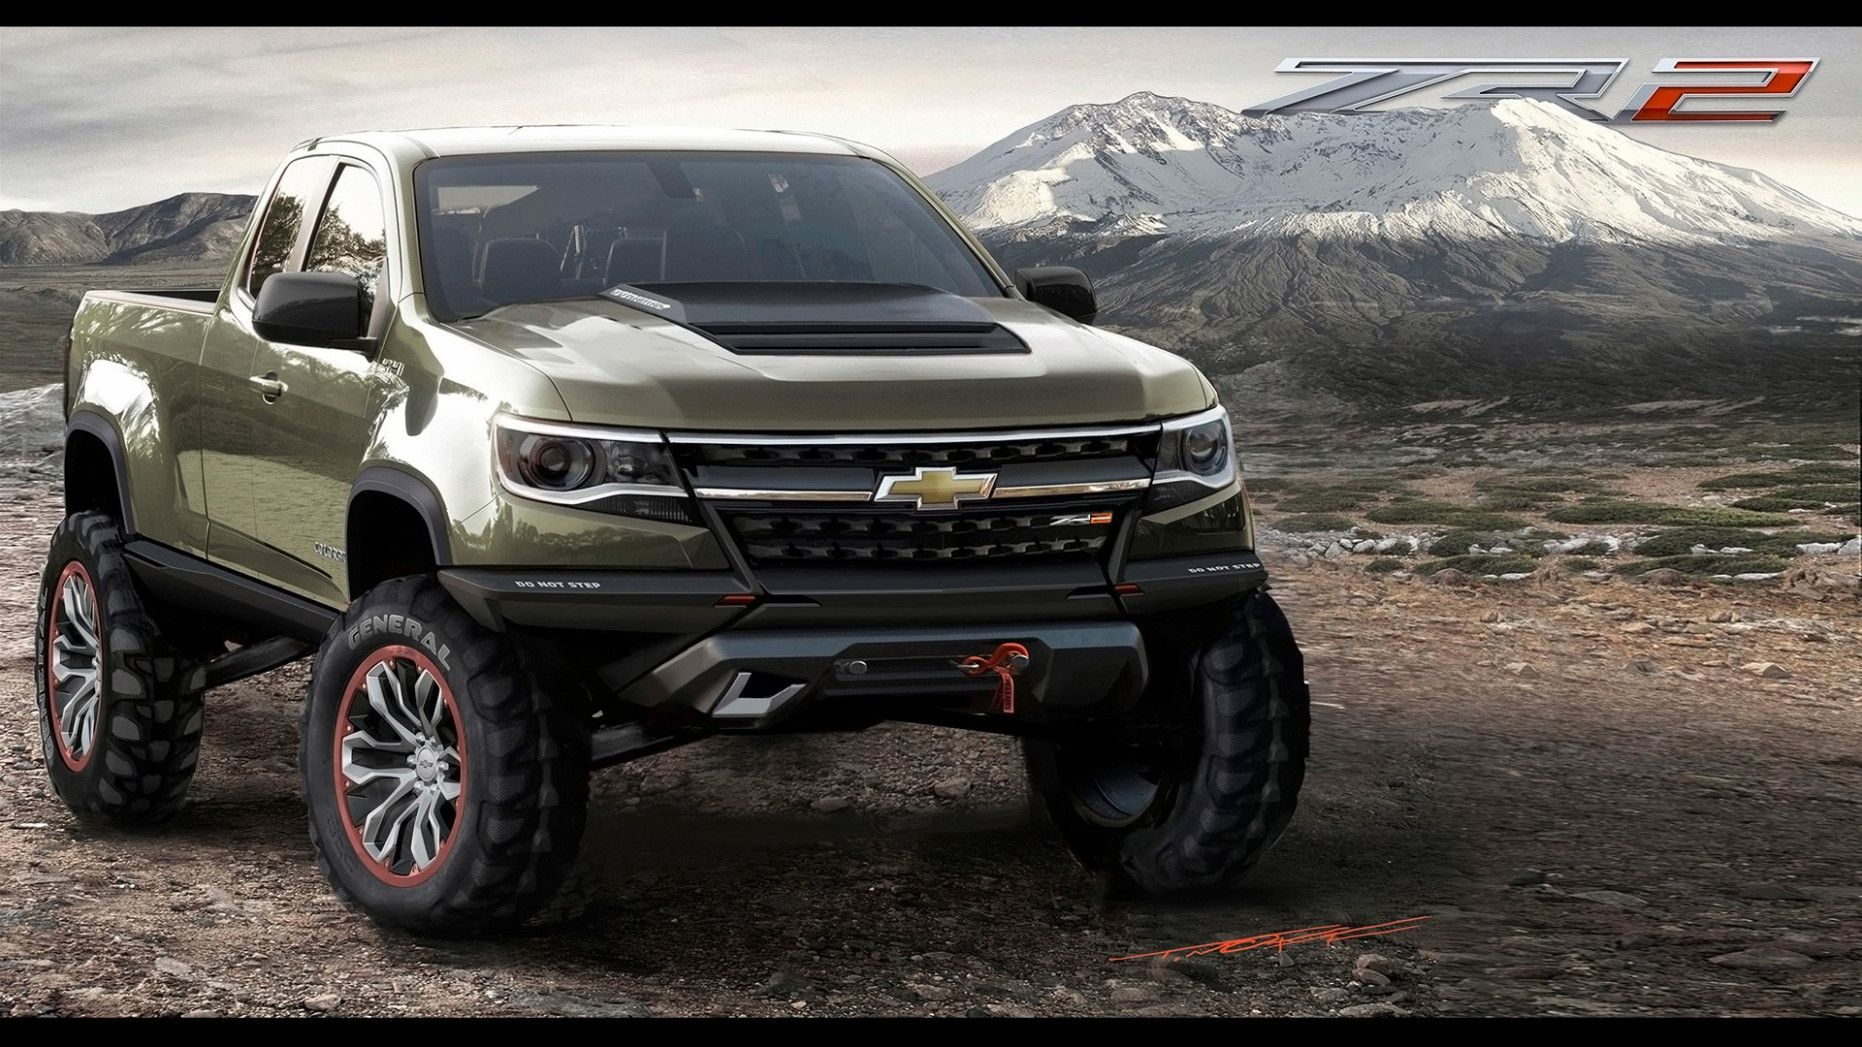 2021 Chevy Reaper Redesign And di 2020